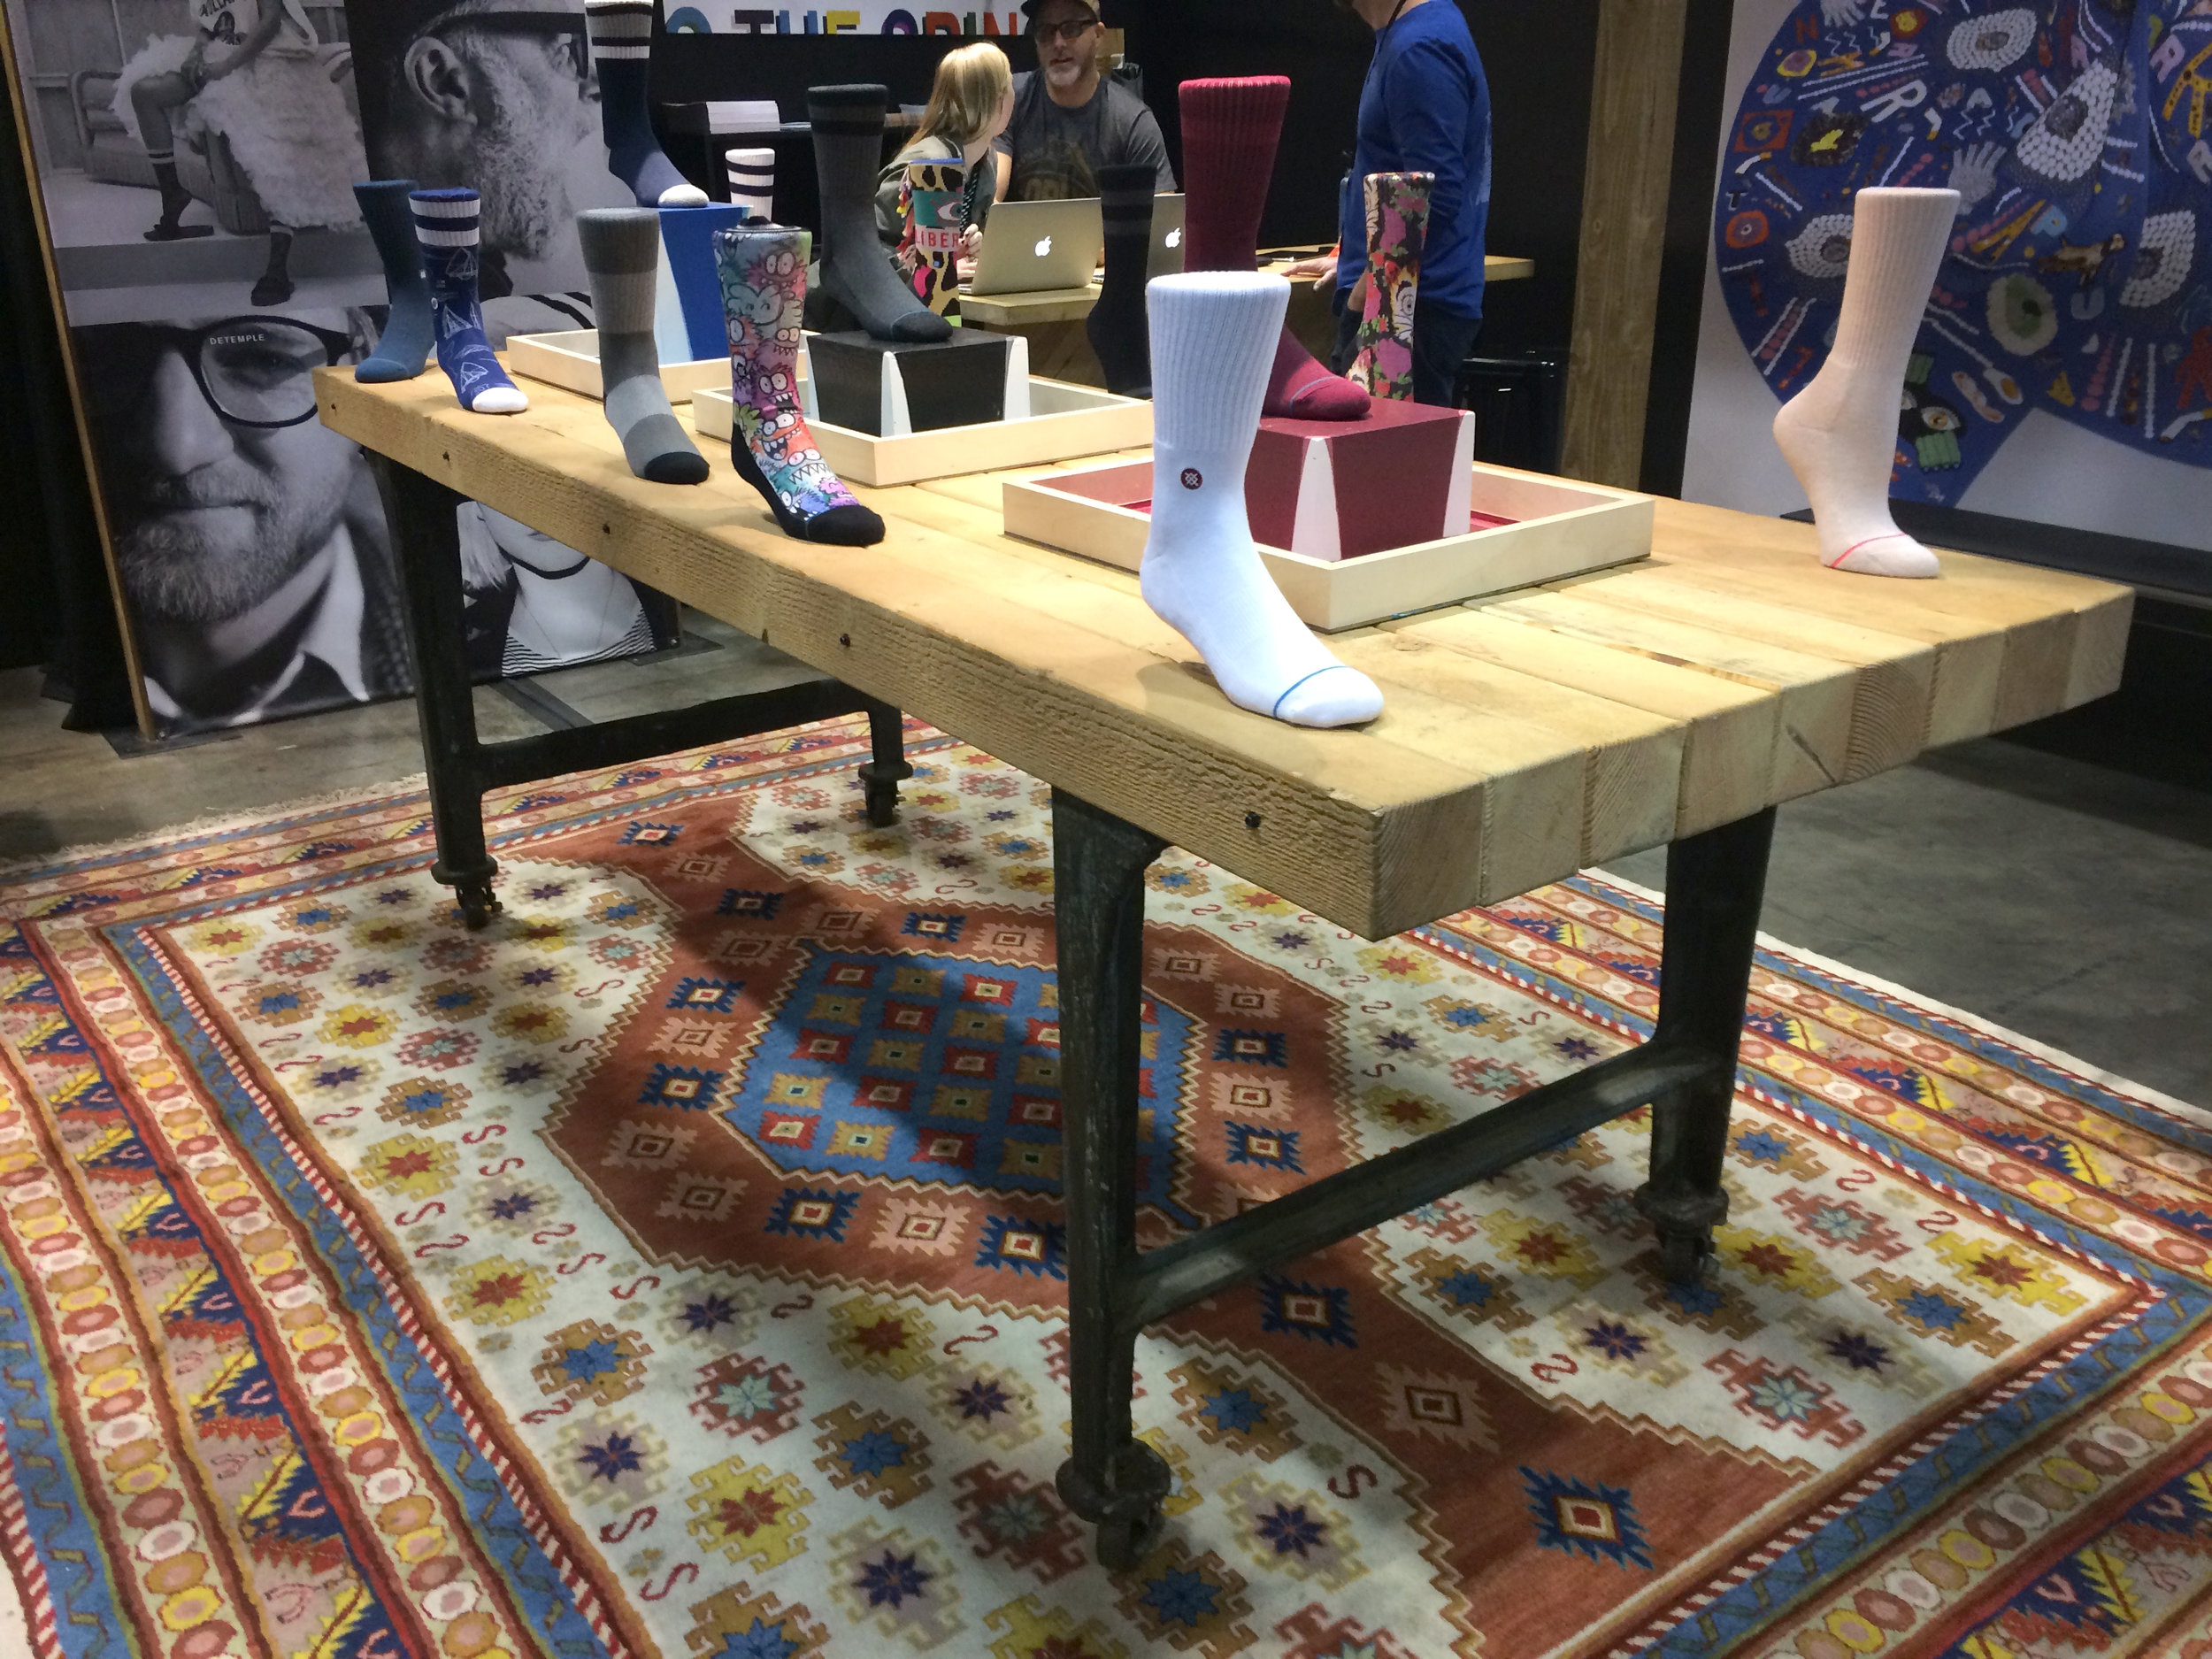 Cool industrial table for Stance.